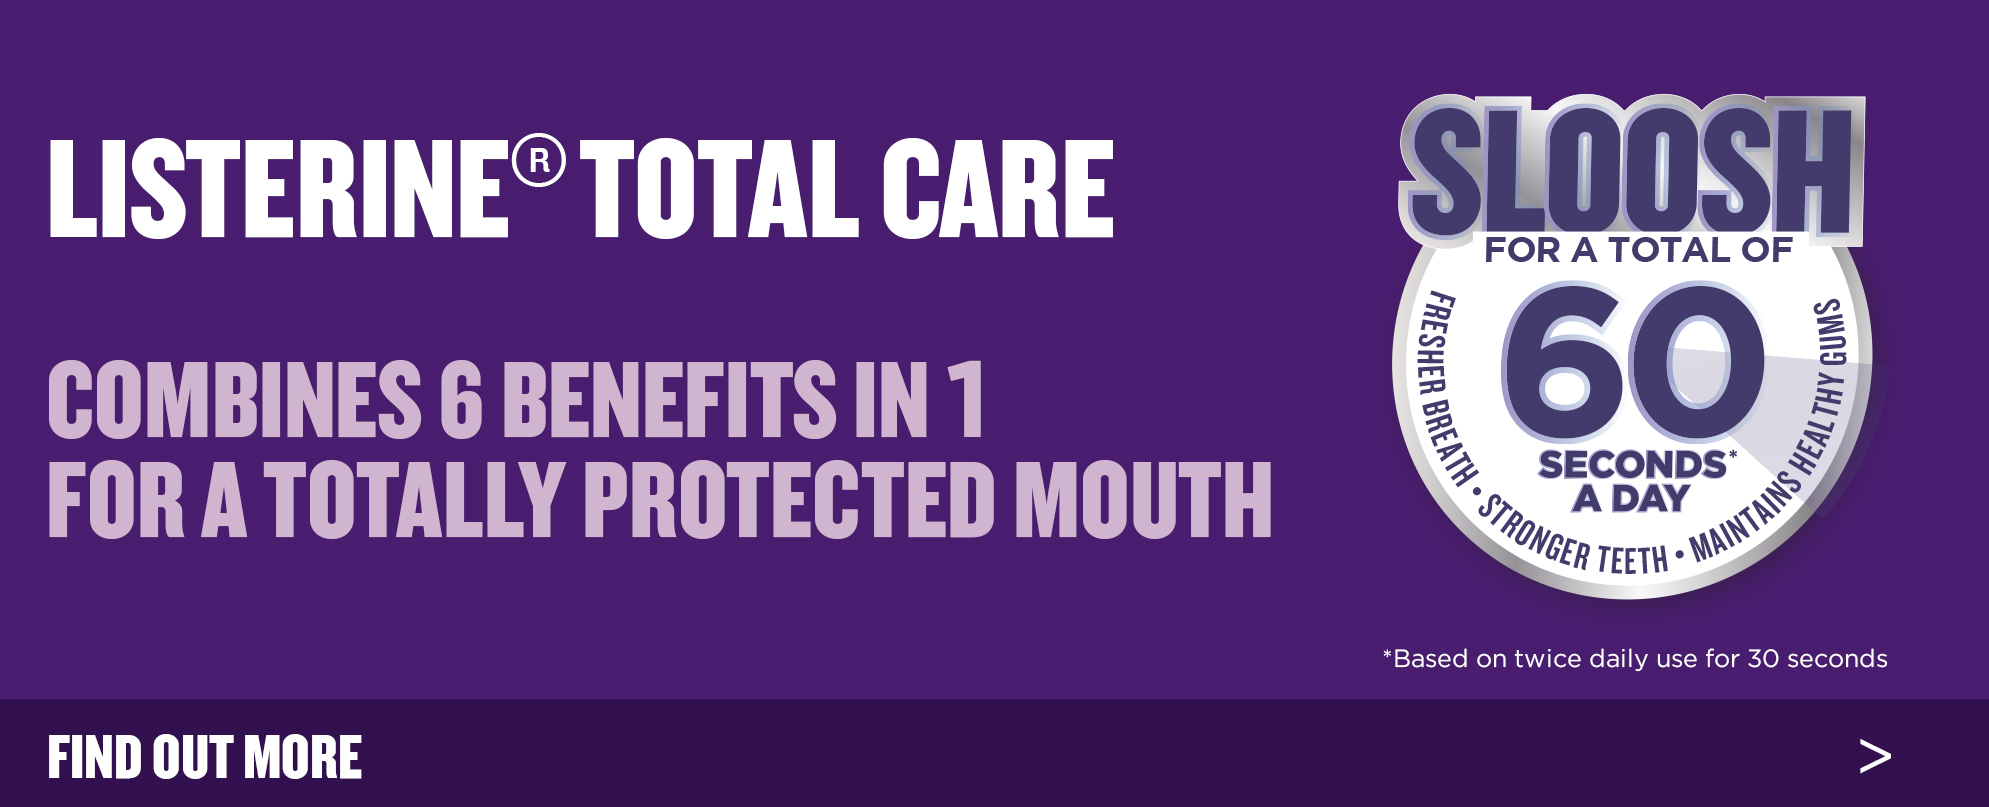 Benefits of Total Care Mouthwash - LISTERINE®